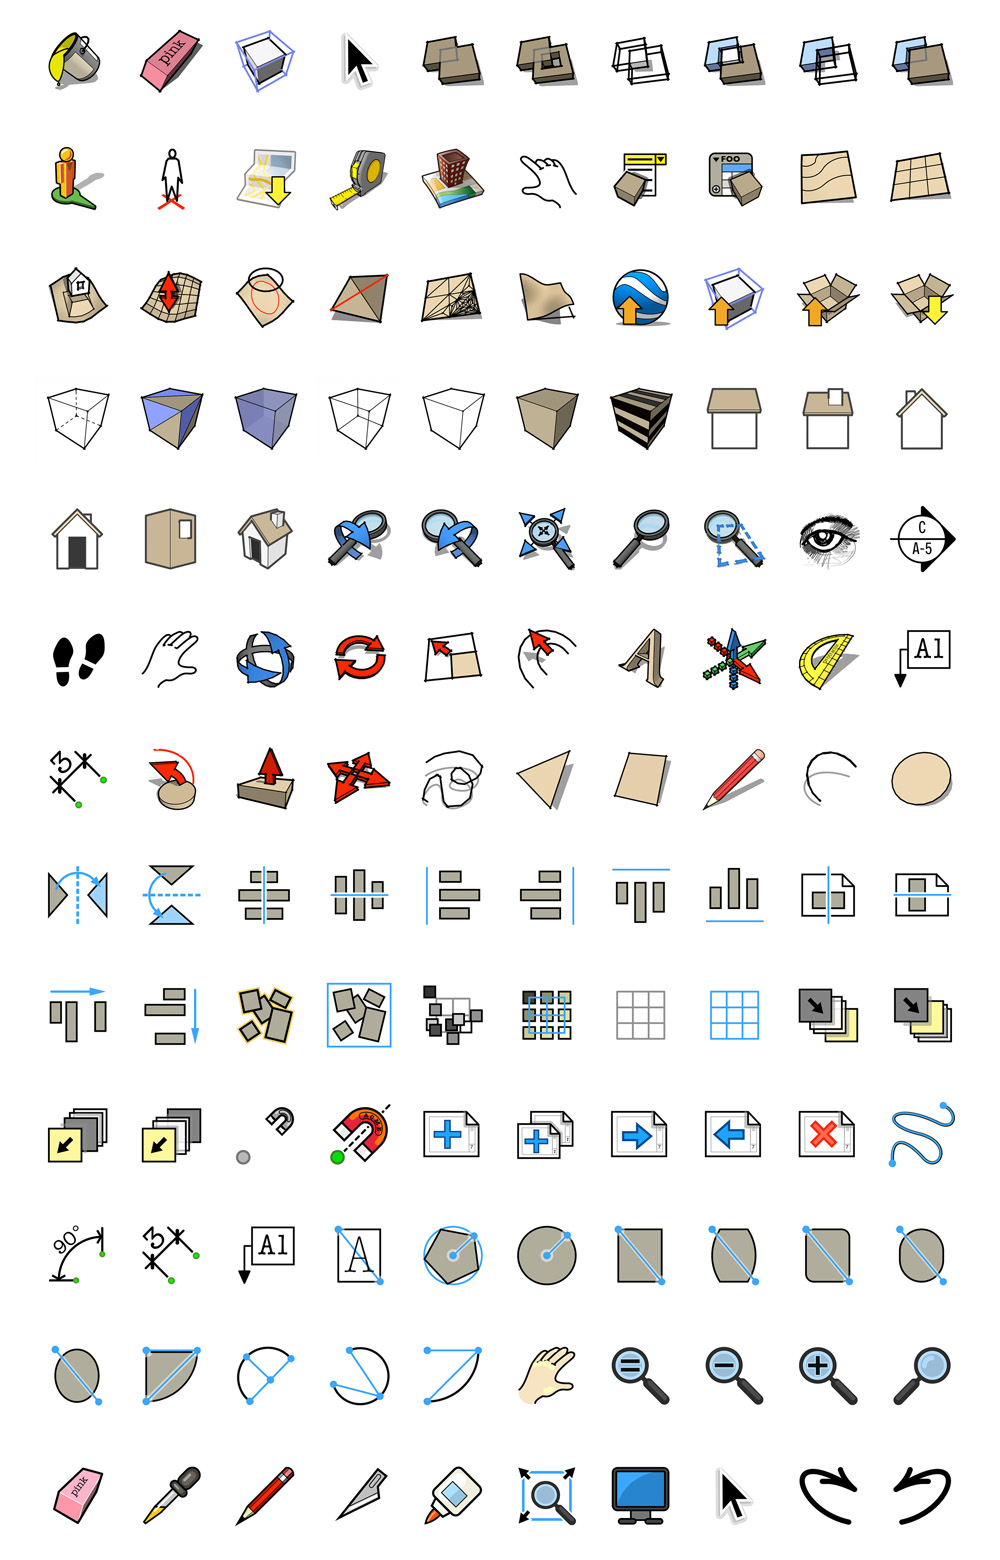 retired sketchup blog hires tool icons for sketchup and